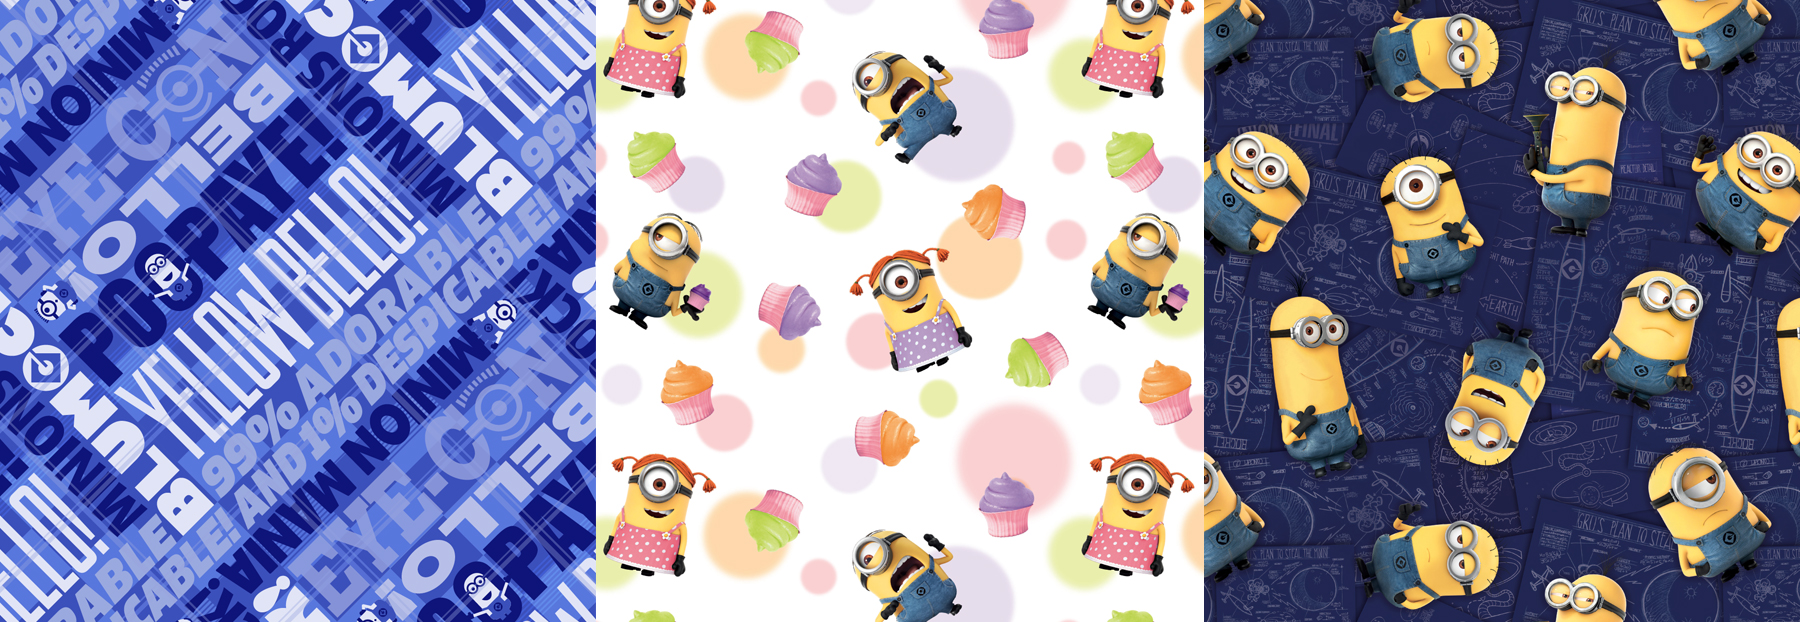 Minions Character Pattern Style Guide Design - Thumb 4